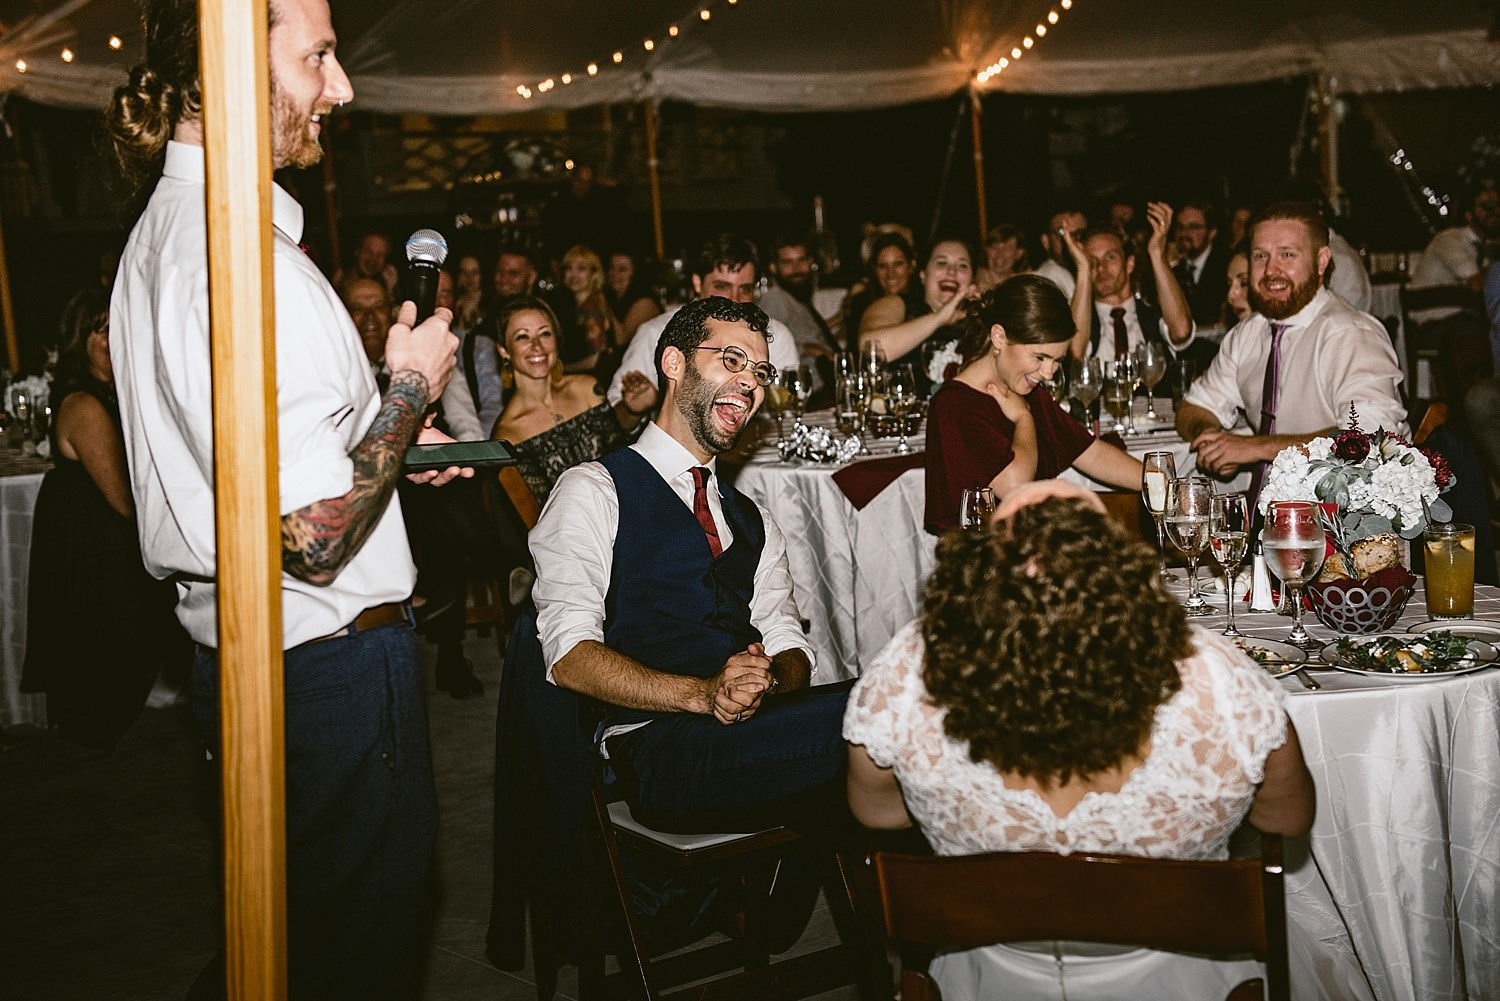 Wedding speeches and laughter